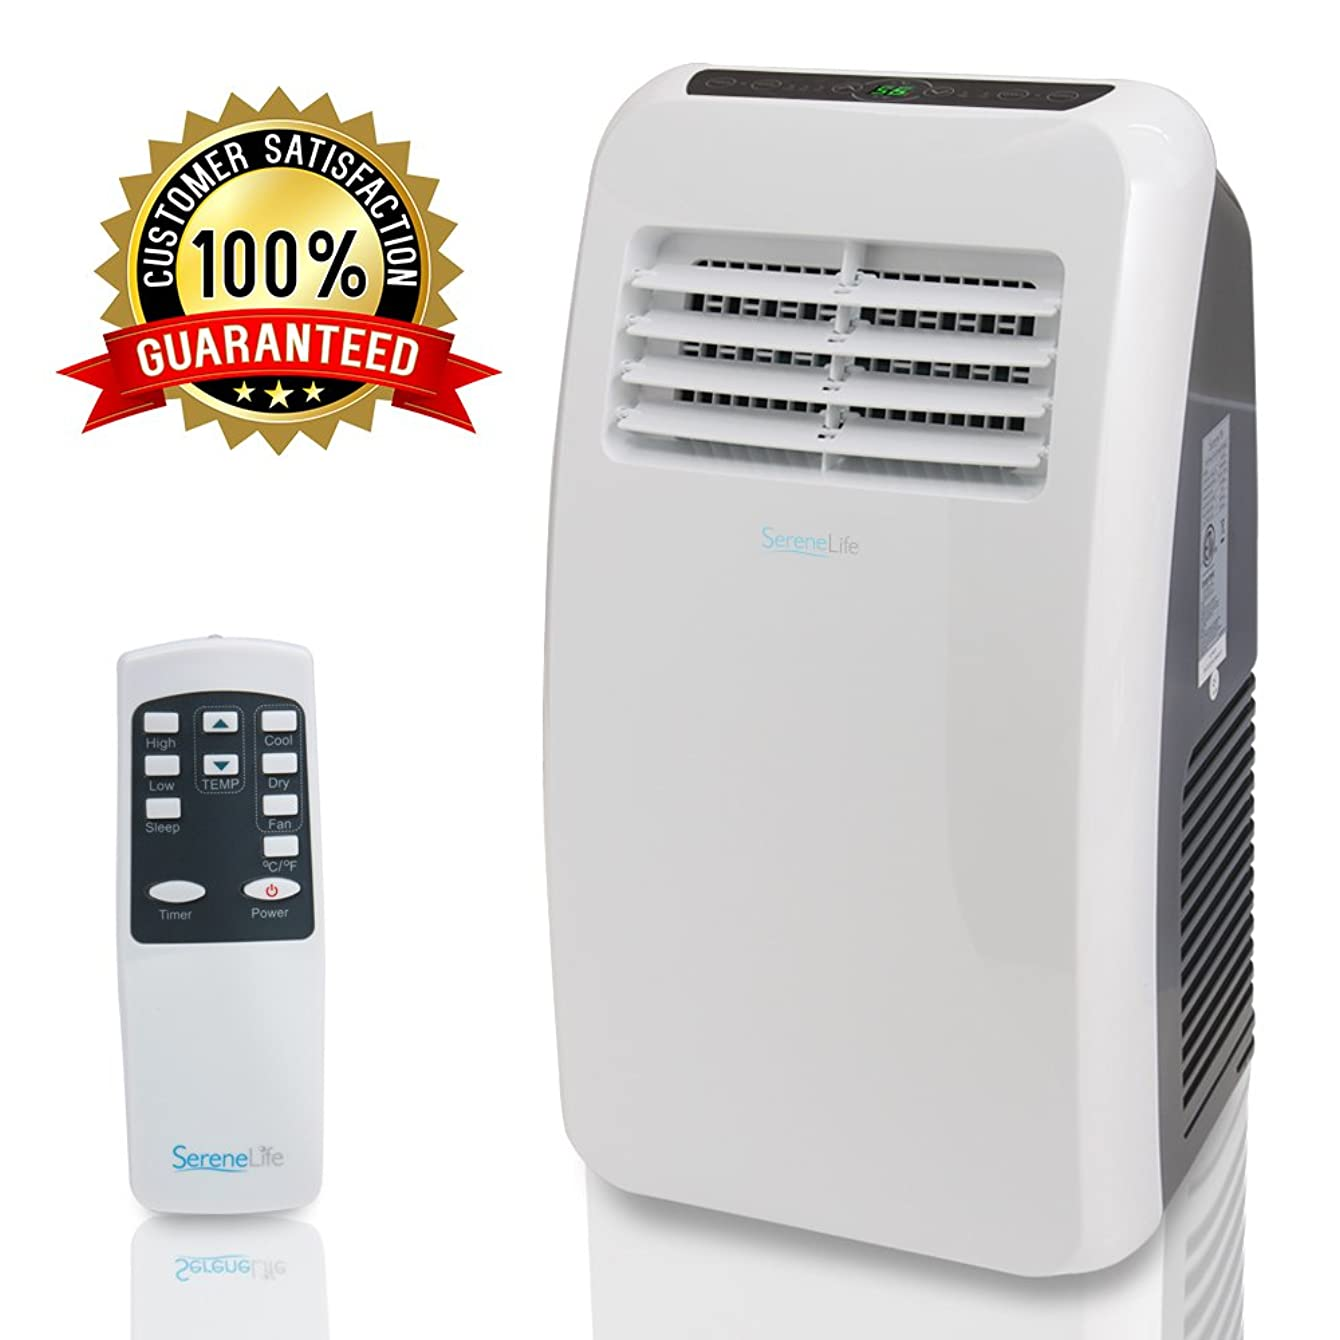 SereneLife 8,000 BTU Portable Air ir Conditioner, 3-in-1 Floor AC Unit with  Built-in Dehumidifier, Fan Modes, Remote Control, Complete Window Mount Exhaust Kit for Rooms Up to 200 Sq. Ft klqnsfjspyumo55